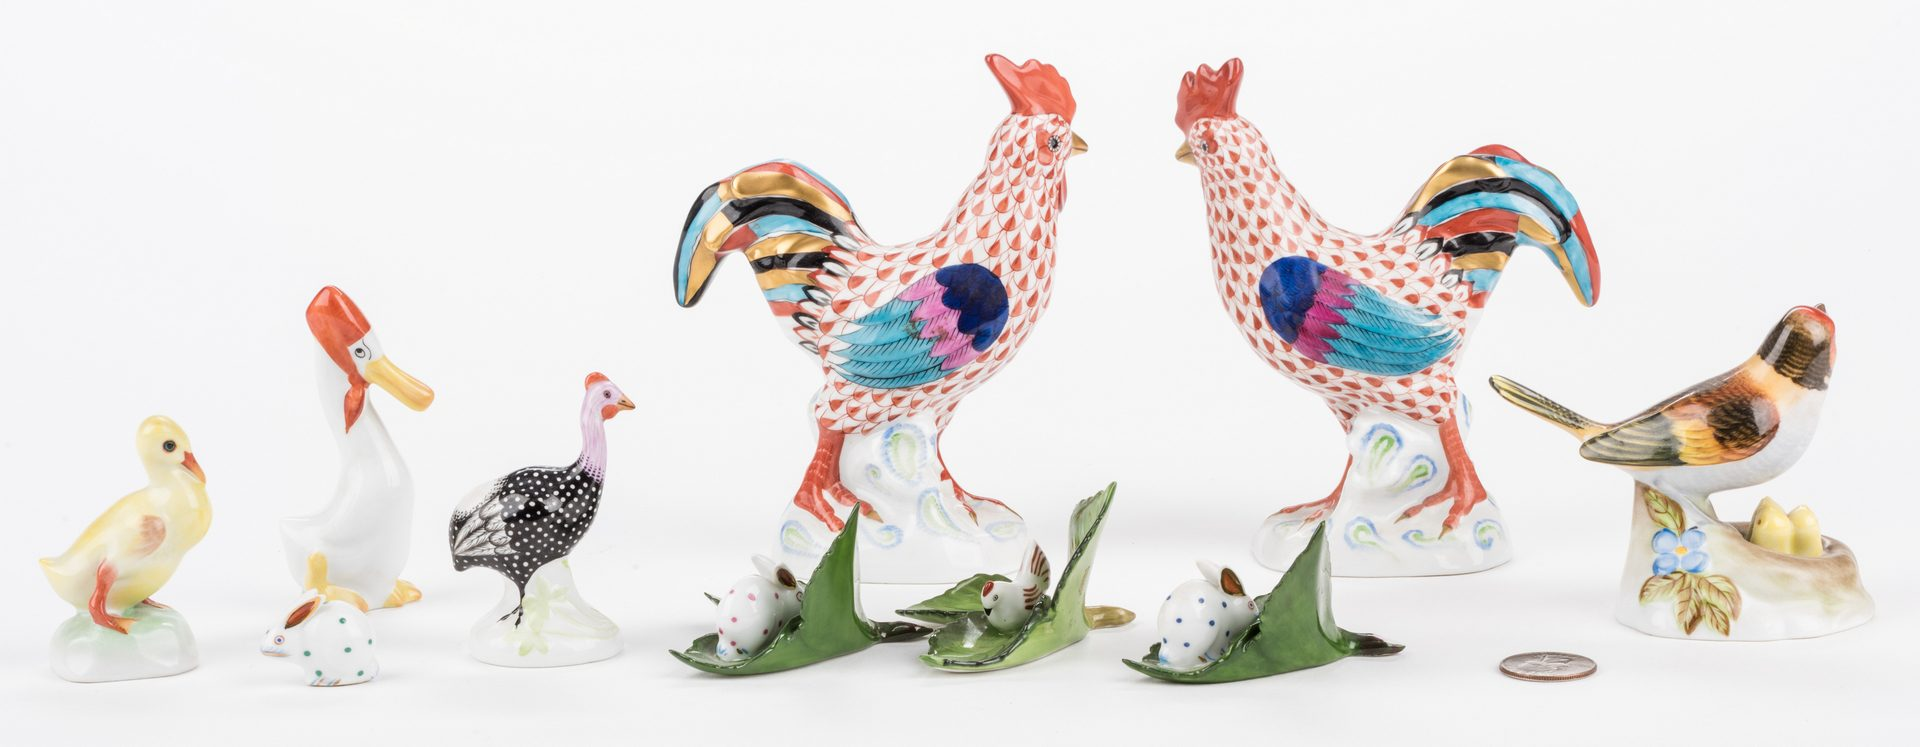 Lot 320: 7 Herend Porcelain Animal Figures & 3 Placecard Holders